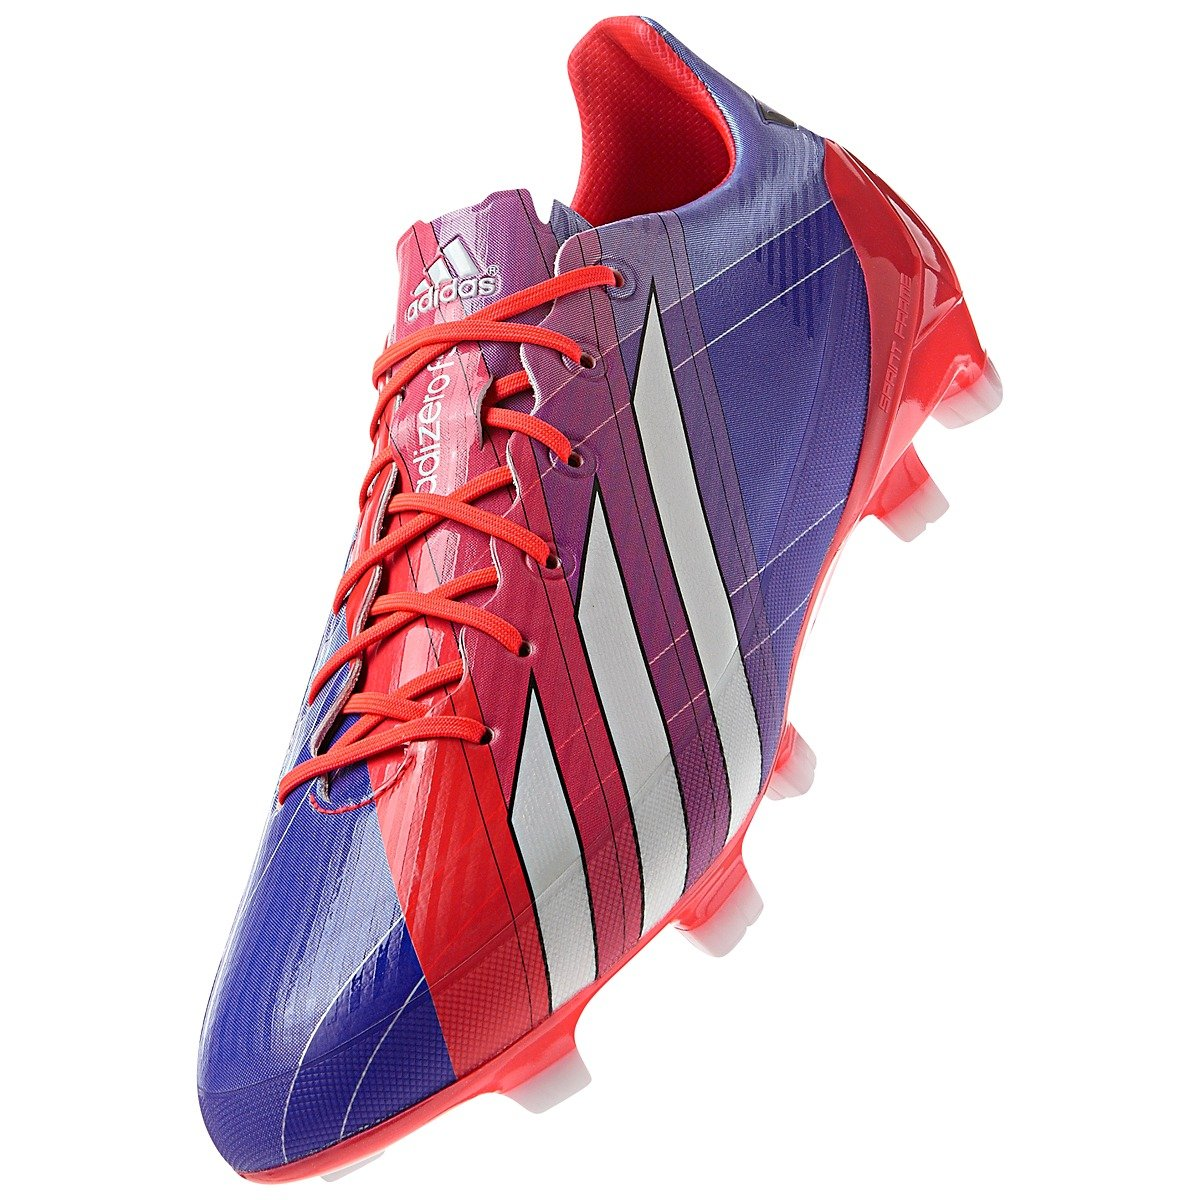 adidas F50 ADIZERO-MESSI (SYNTHETIC) TRX FG SOCCER CLEATS (PURPLE) (9) by adidas (Image #1)